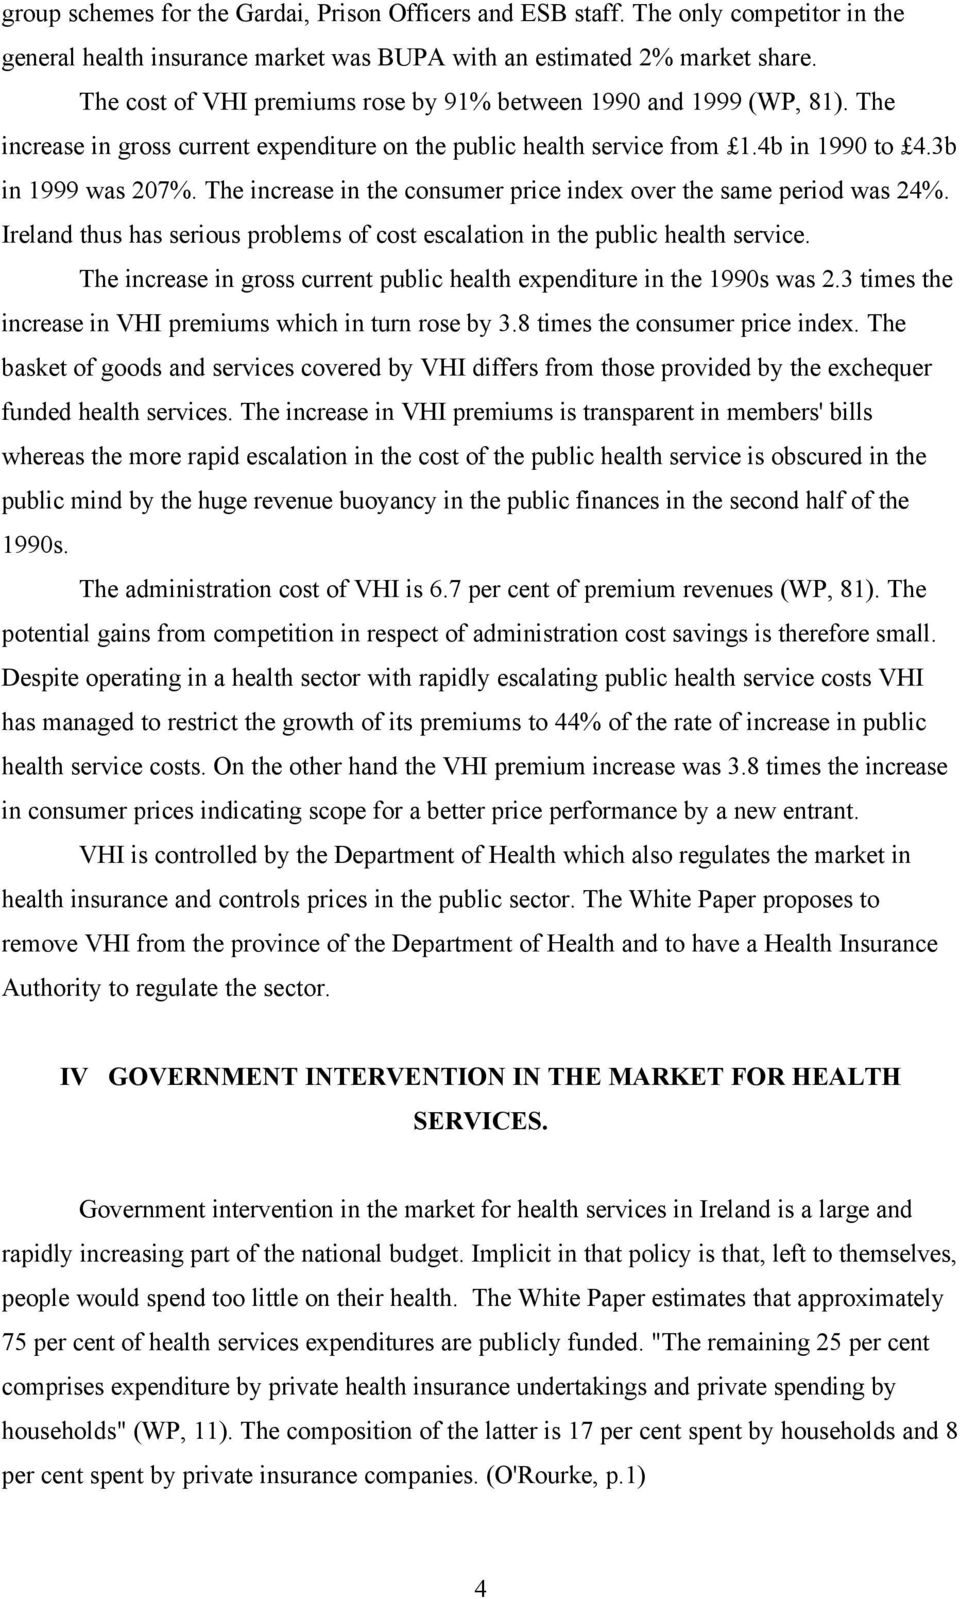 The increase in the consumer price index over the same period was 24%. Ireland thus has serious problems of cost escalation in the public health service.